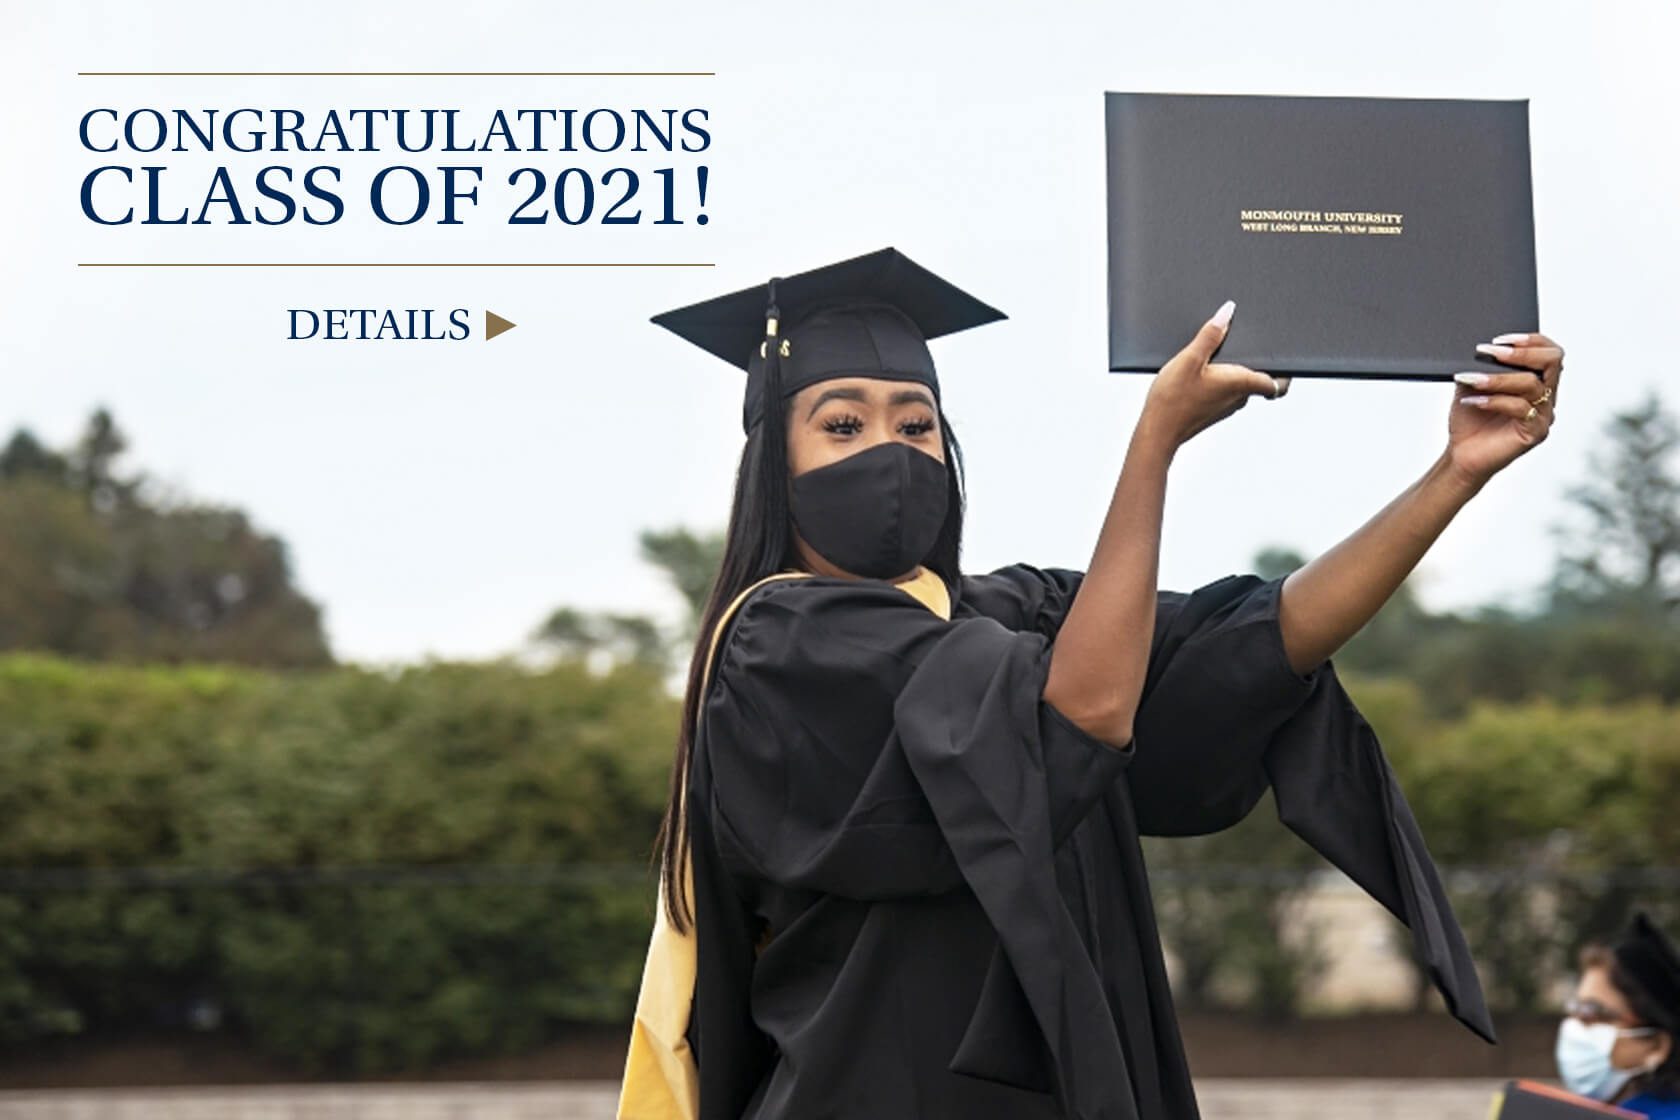 Congratulations to the class of 2021! Get more details